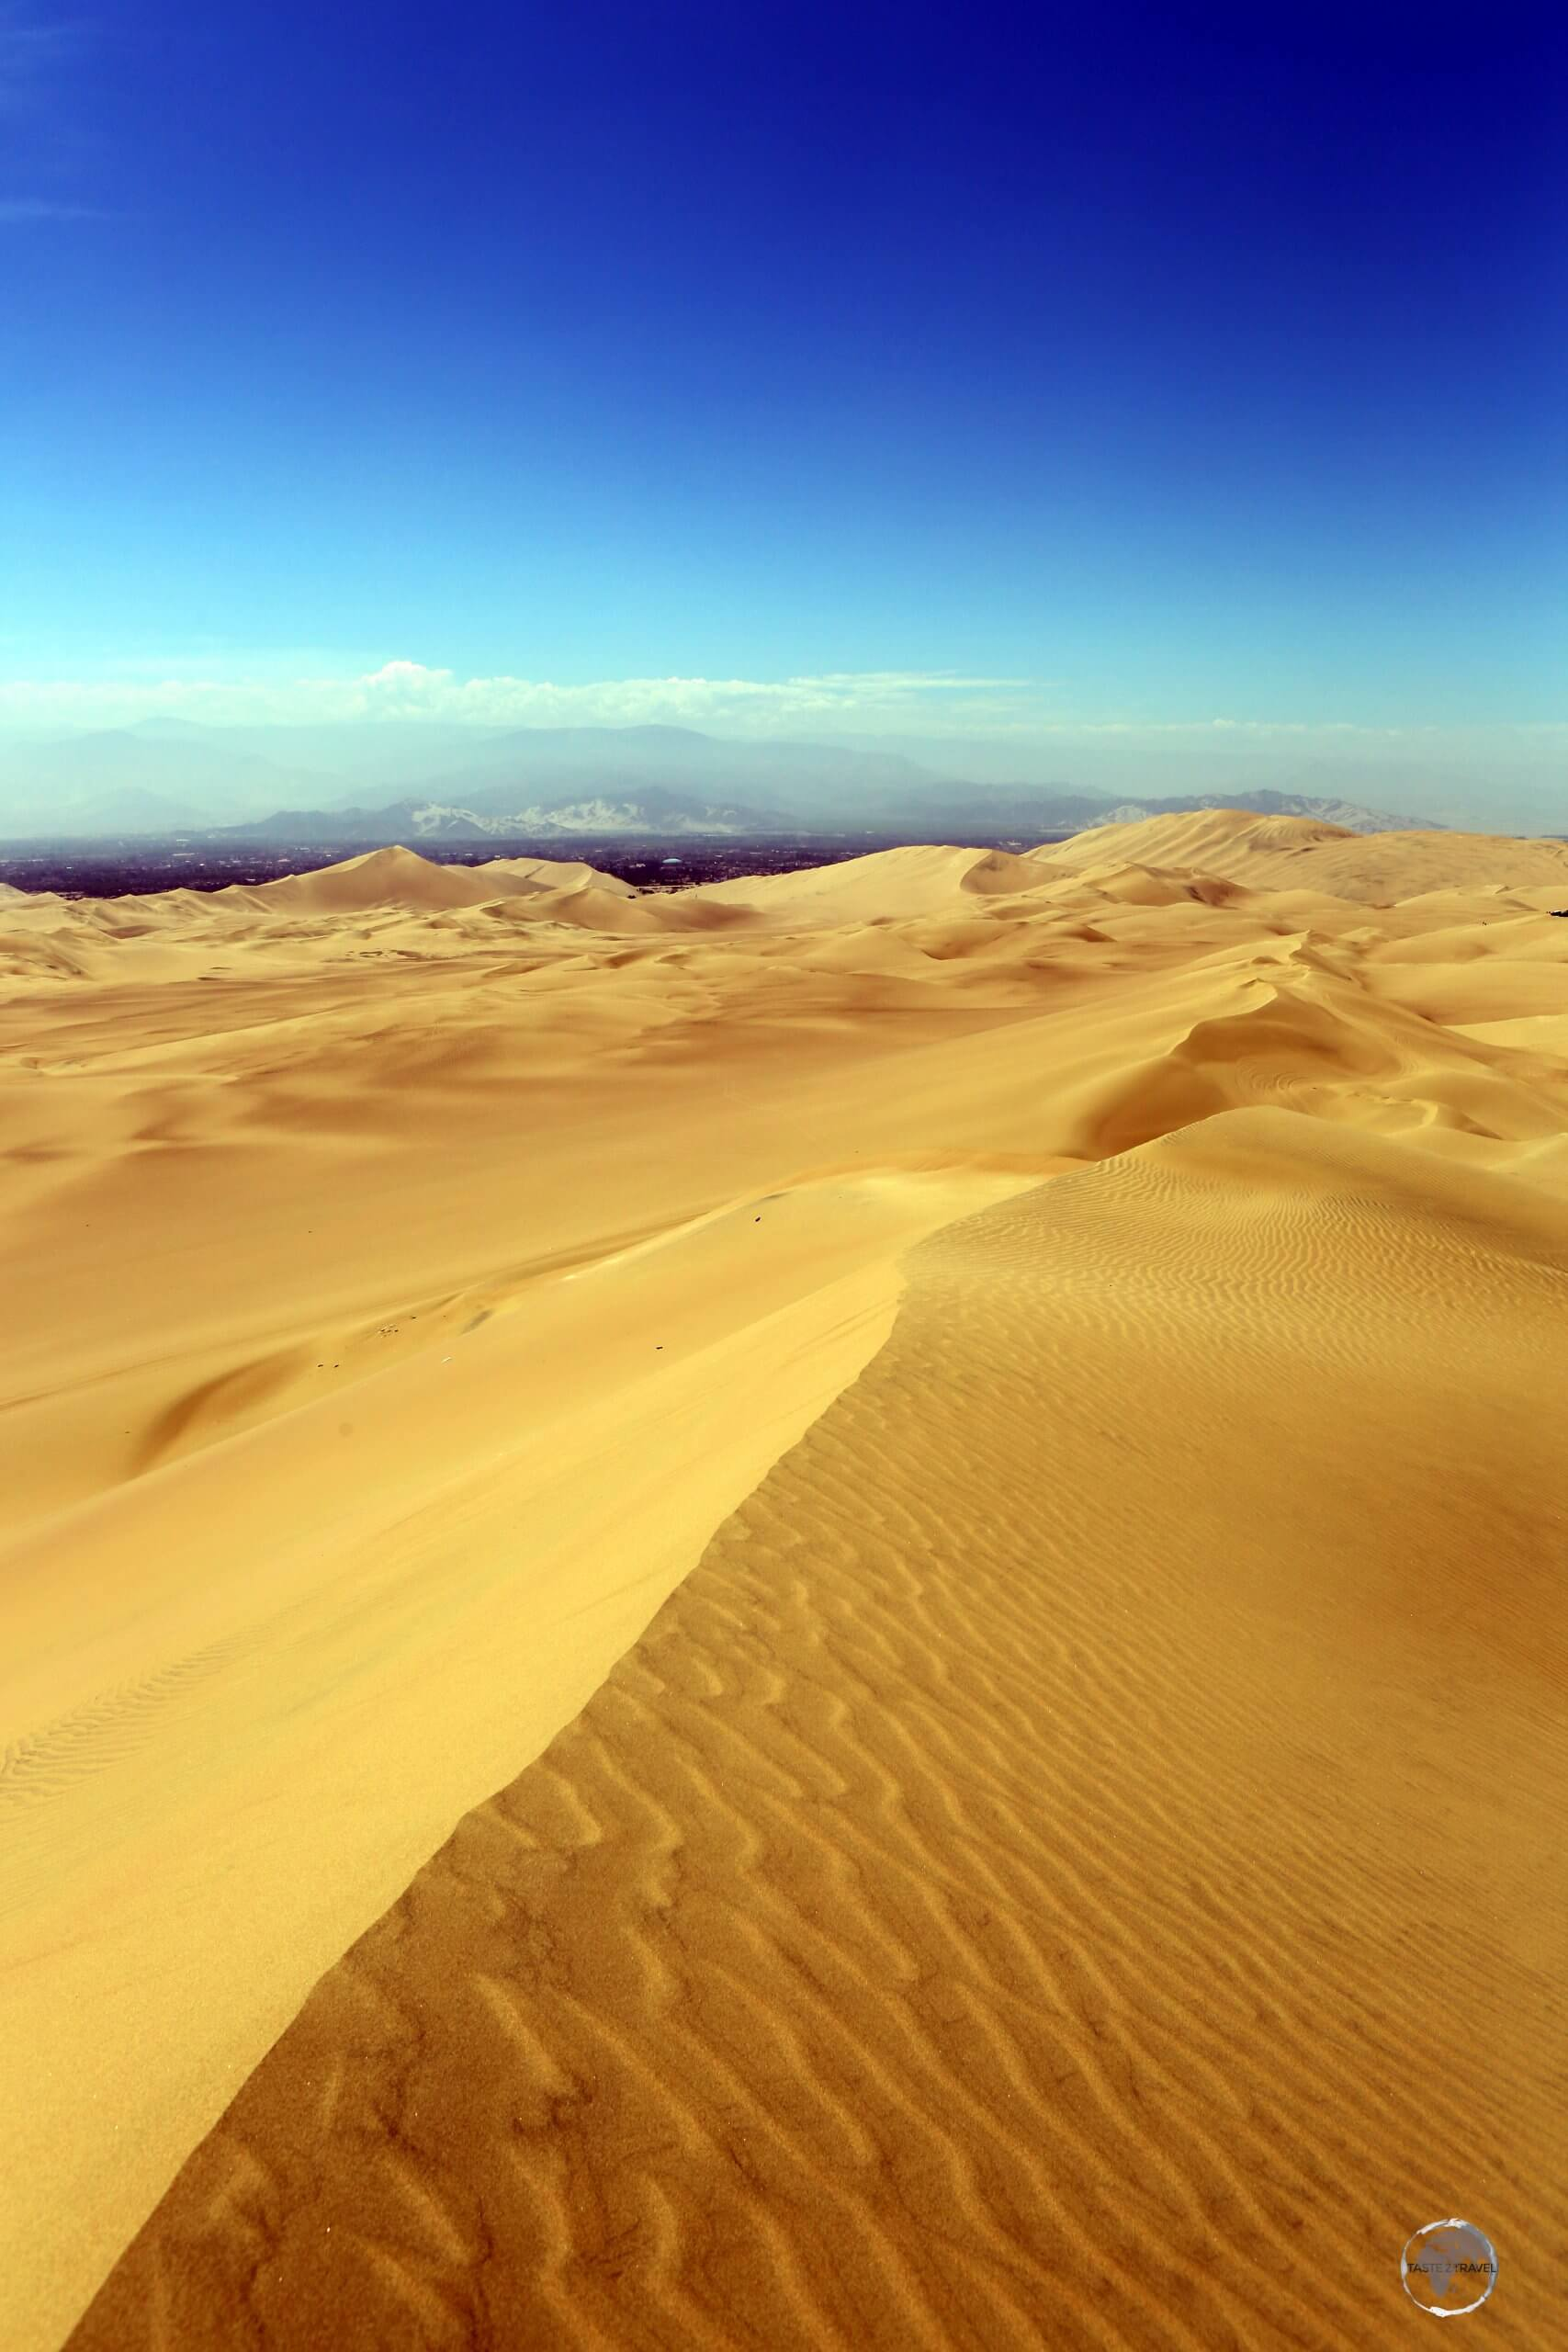 Sand dunes around the Peruvian oasis town of Huacachina, with the foothills of the Andes visible in the background.